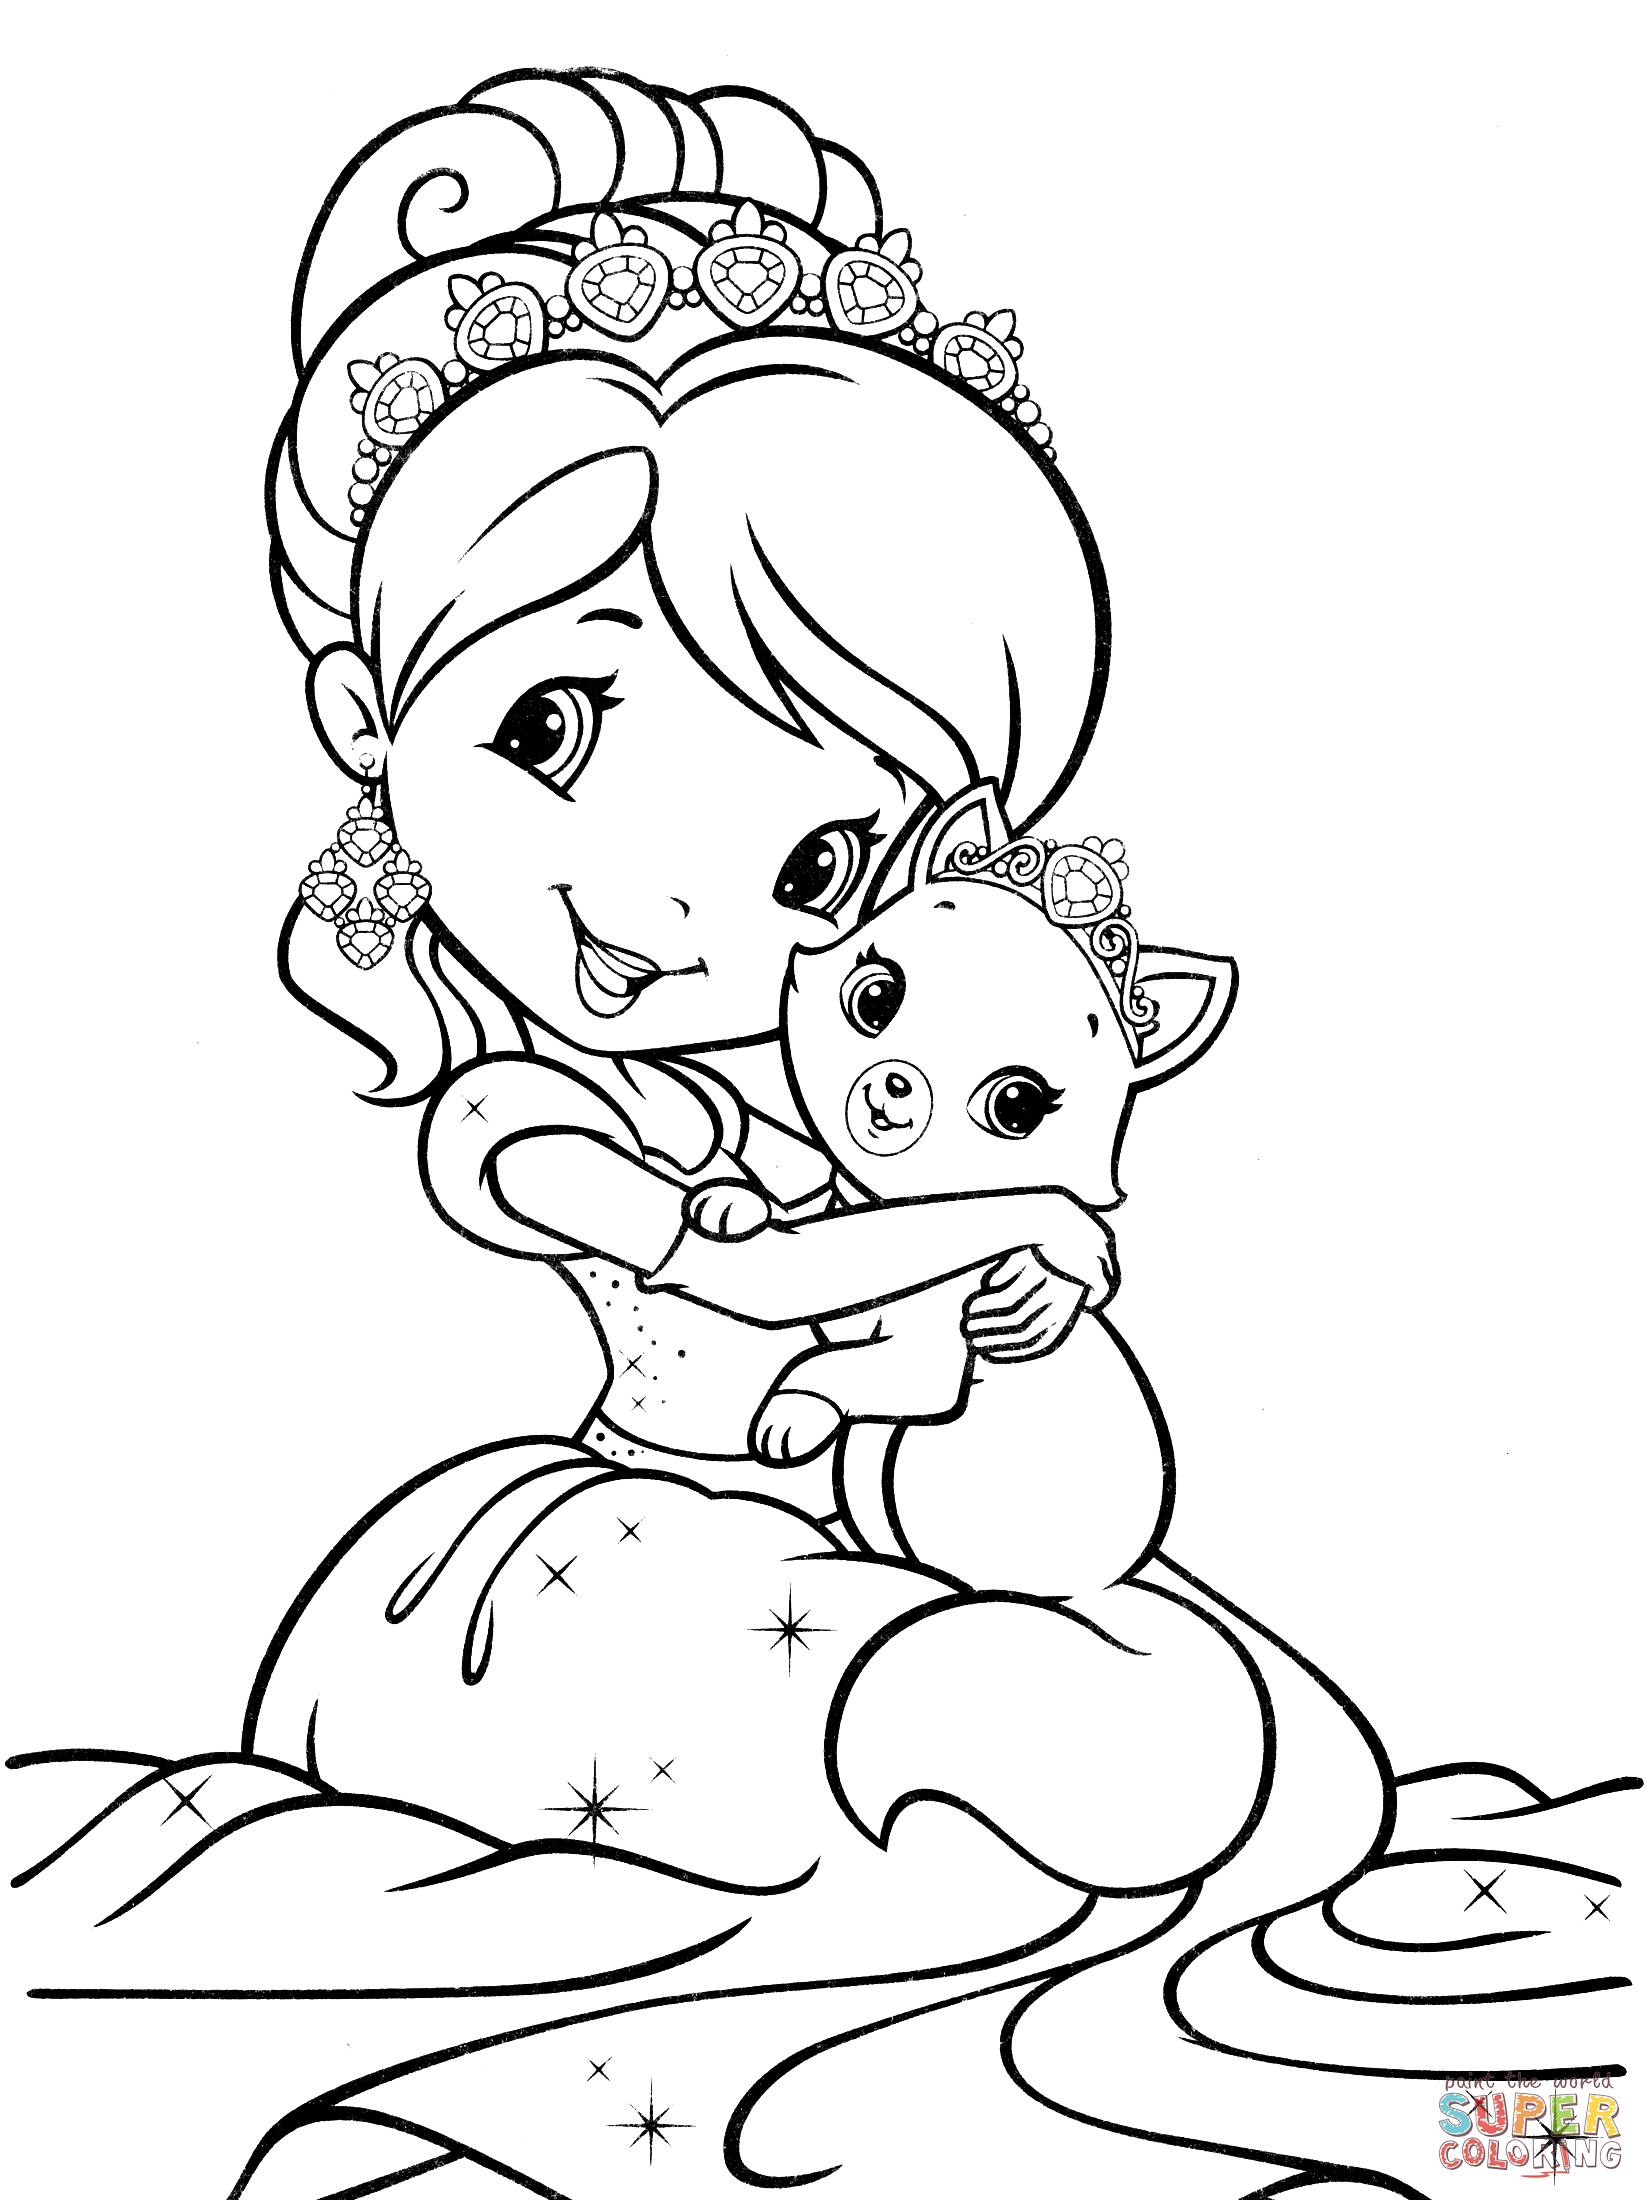 Strawberry Shortcake Mermaid Coloring Page